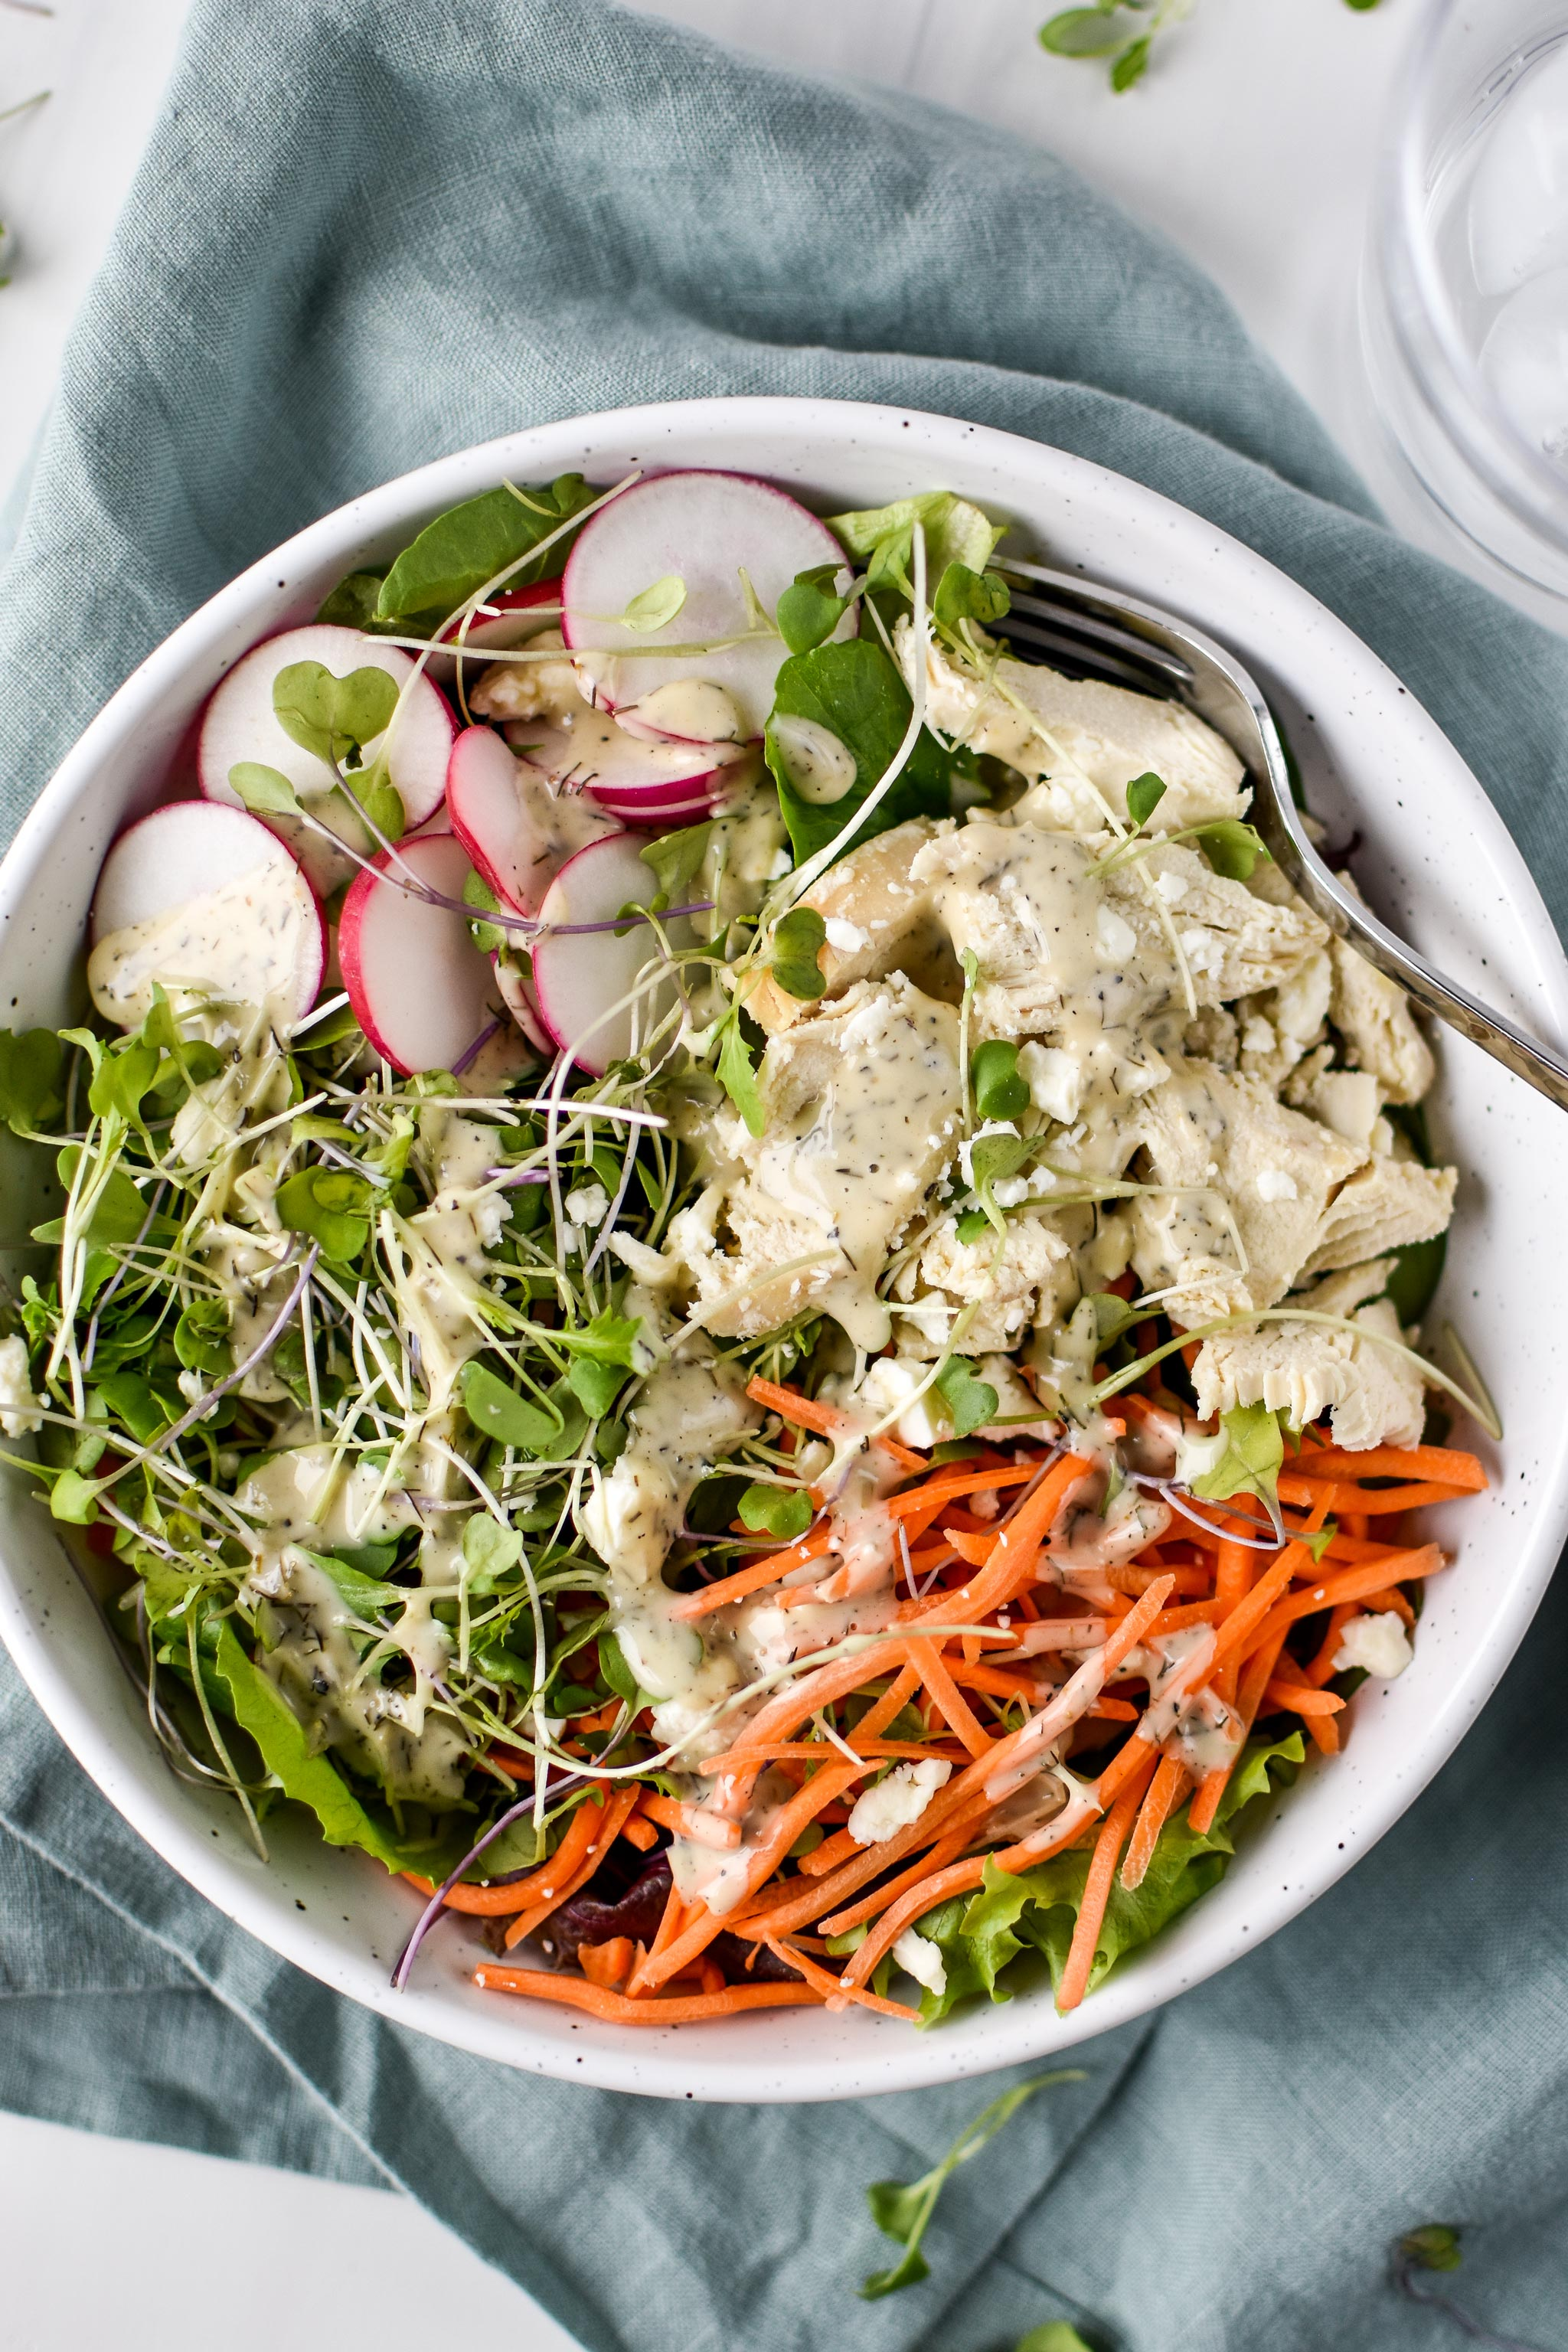 Simple Spring mix lunch salad pictured with ranch dressing on top